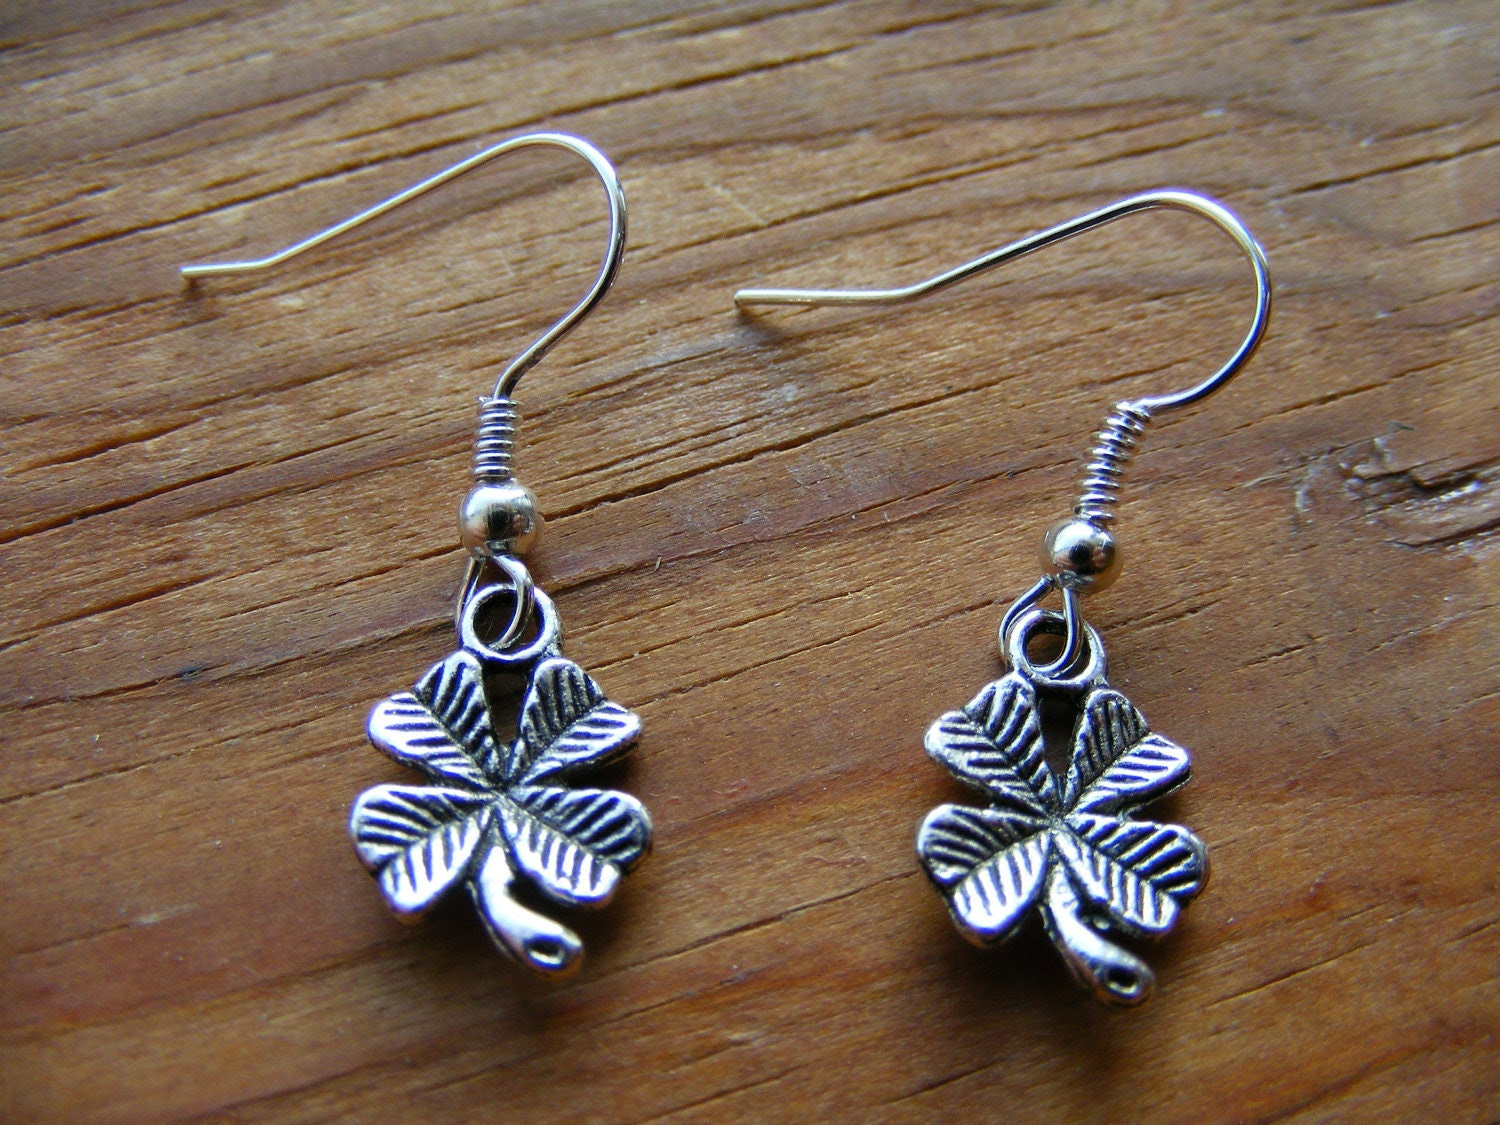 Earrings Four Leaf Clovers